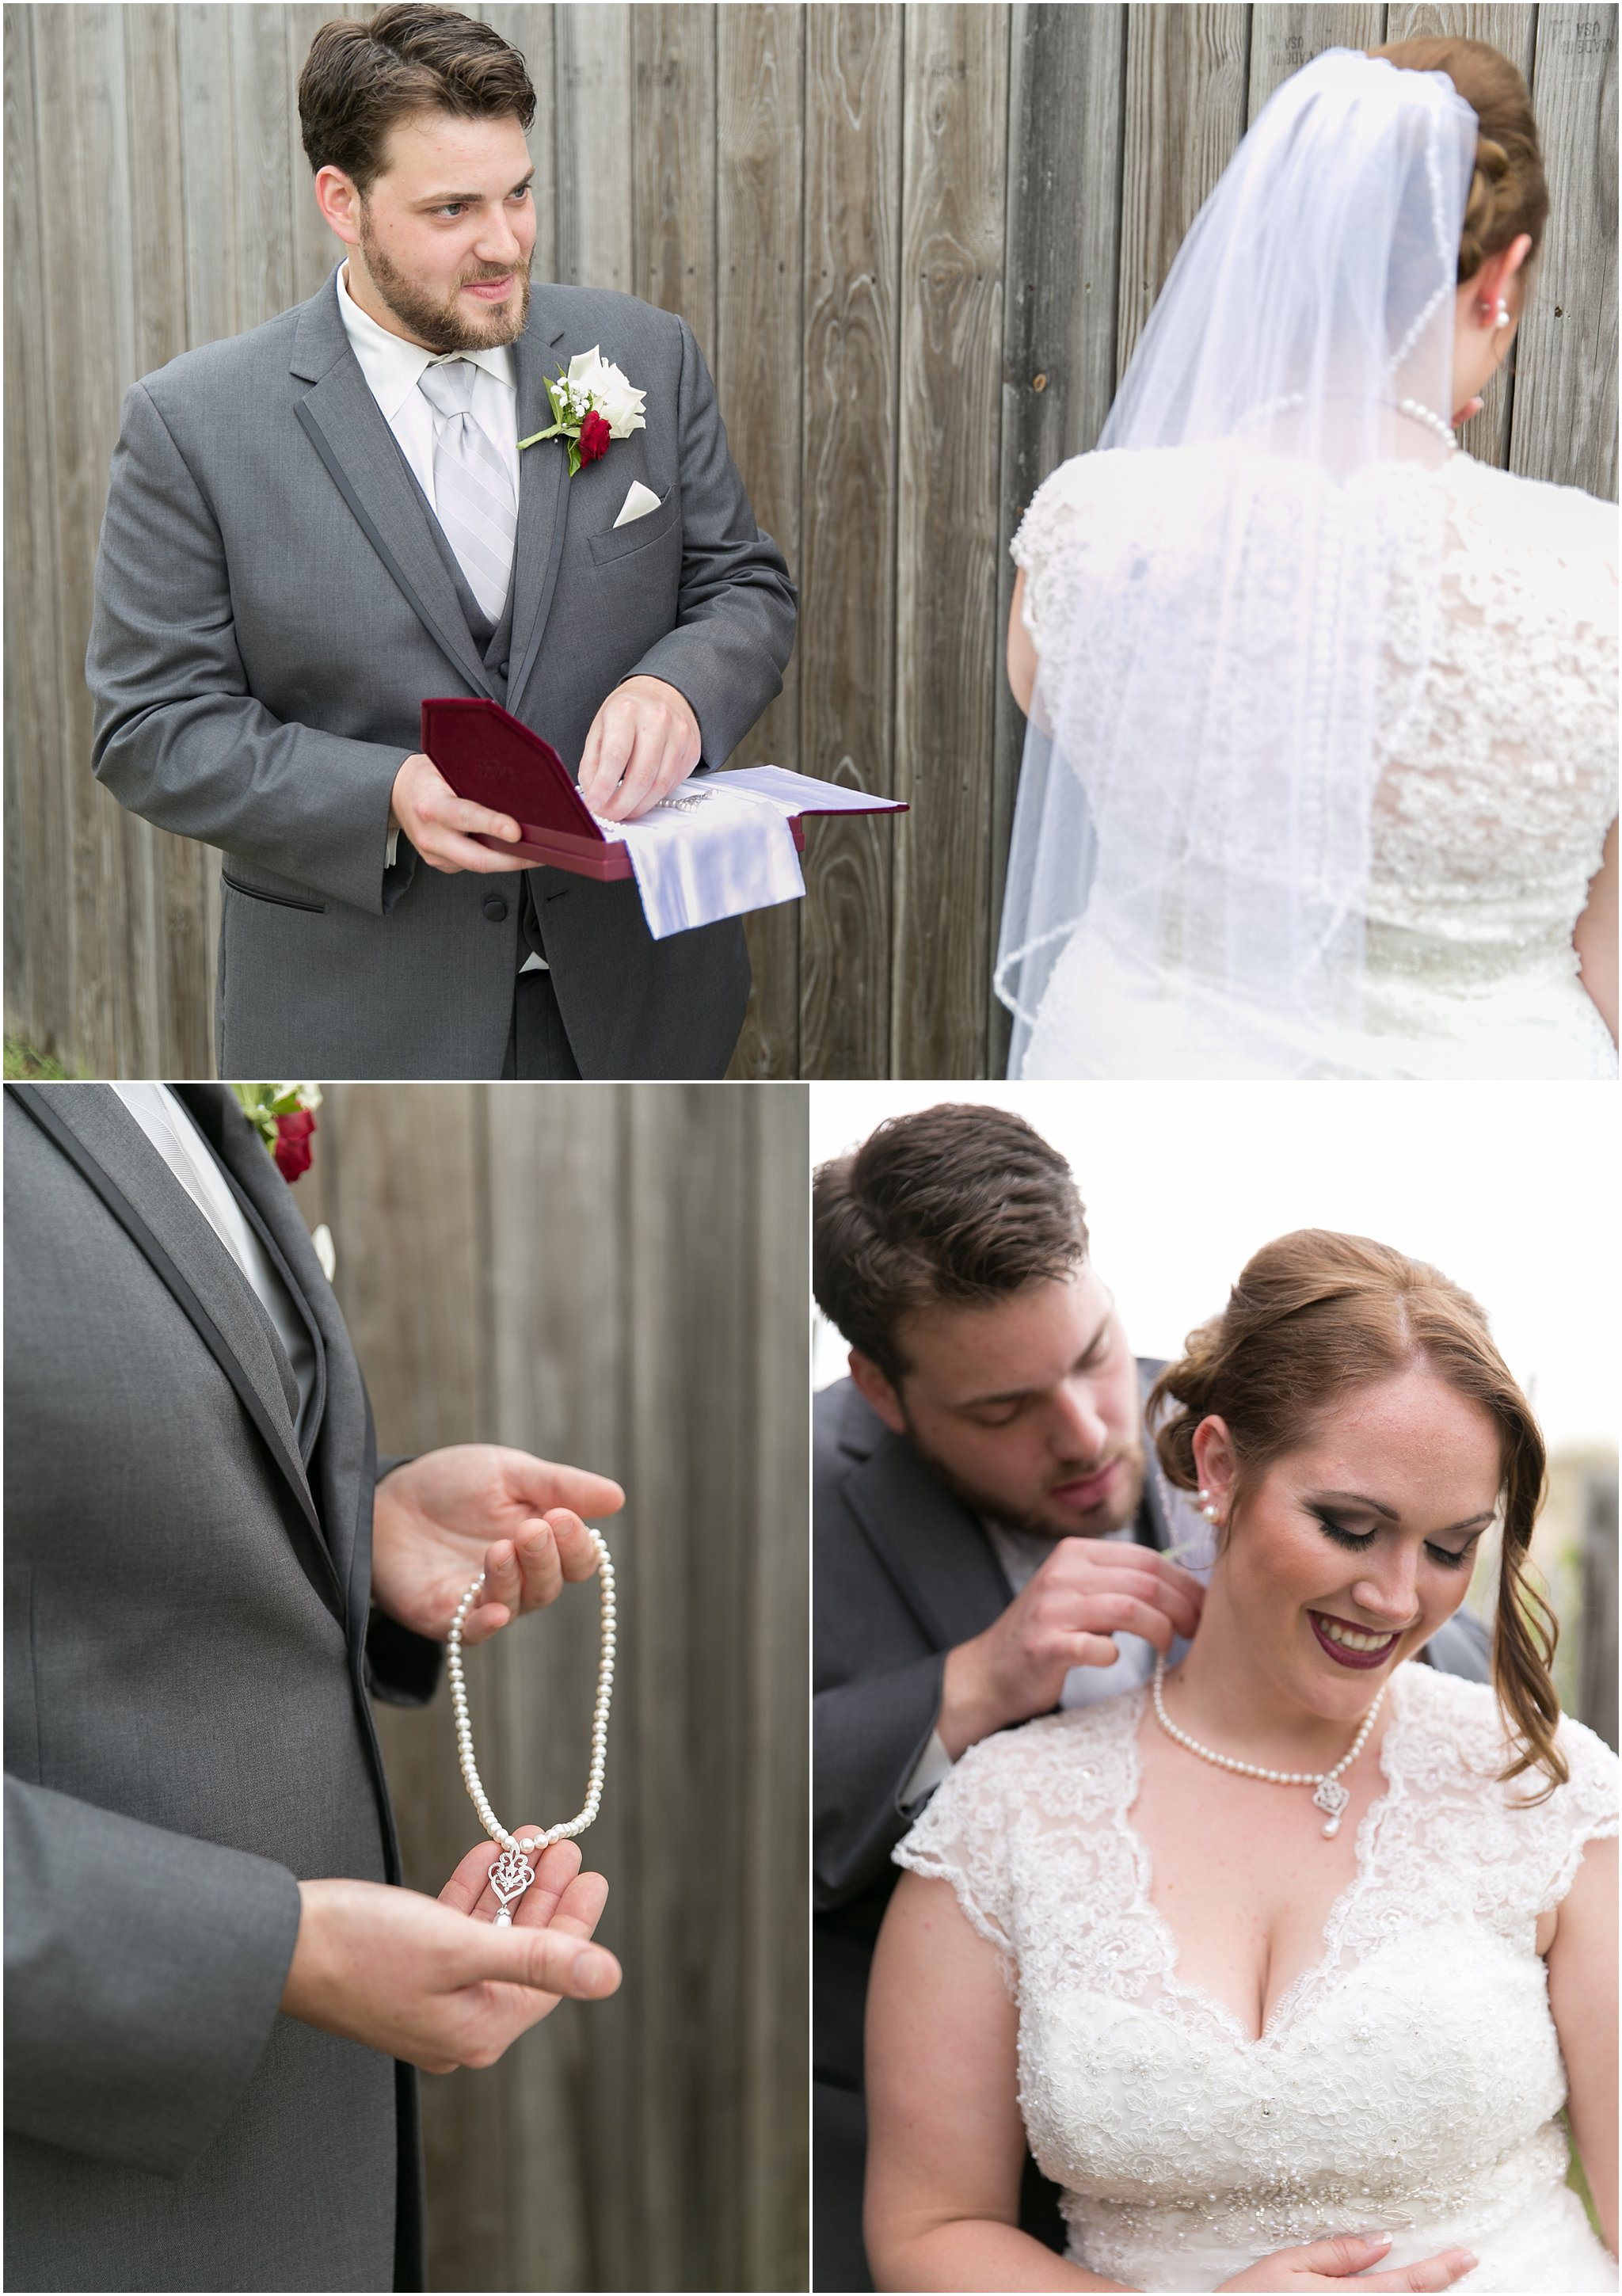 jessica_ryan_photography_wedding_hampton_roads_virginia_virginia_beach_weddings_0614